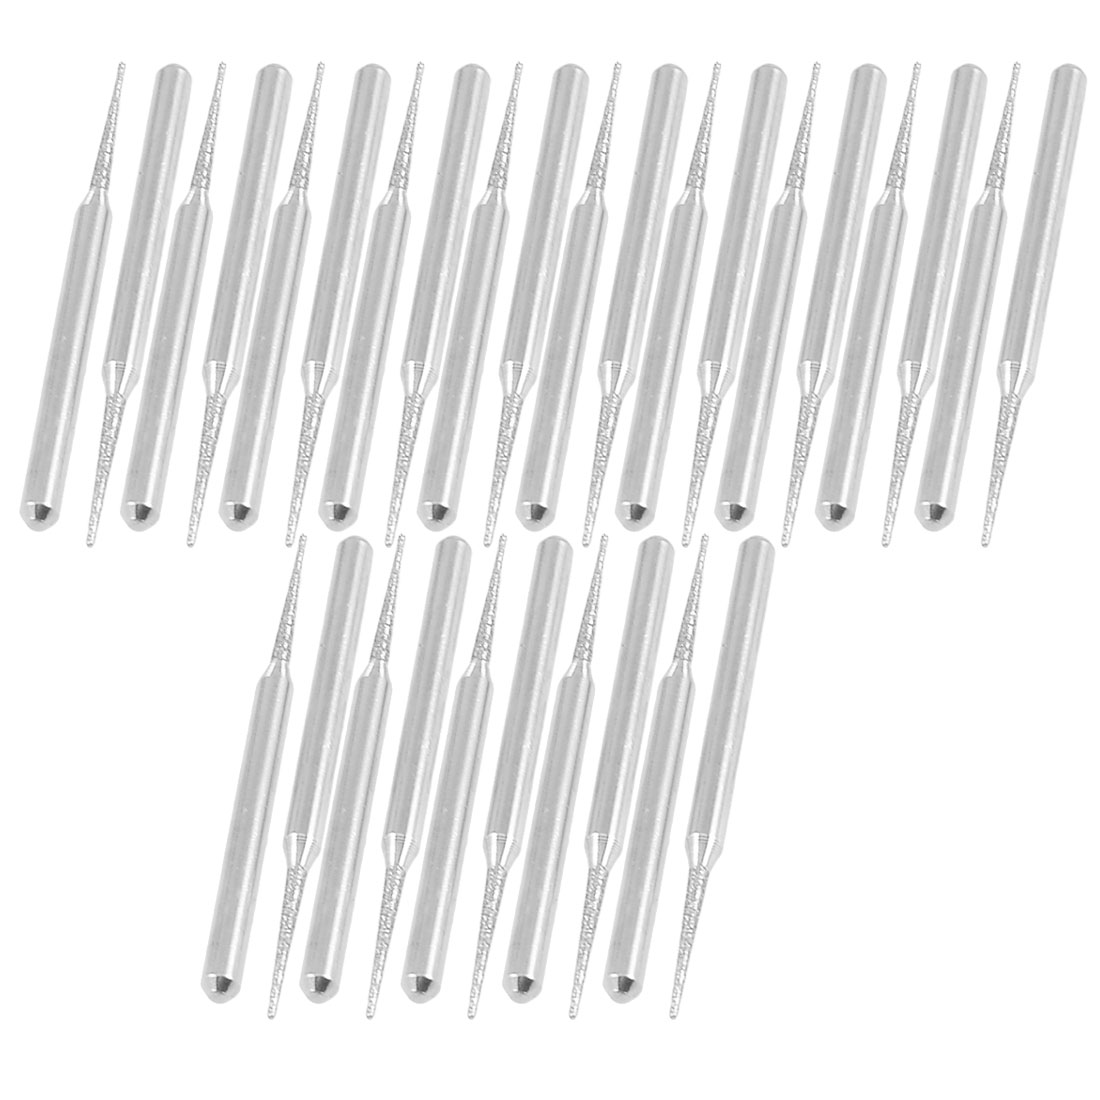 30 Pcs 3mm Shank 1.5mm Tapered Tip Grinding Diamond Mounted Bits Silver Tone